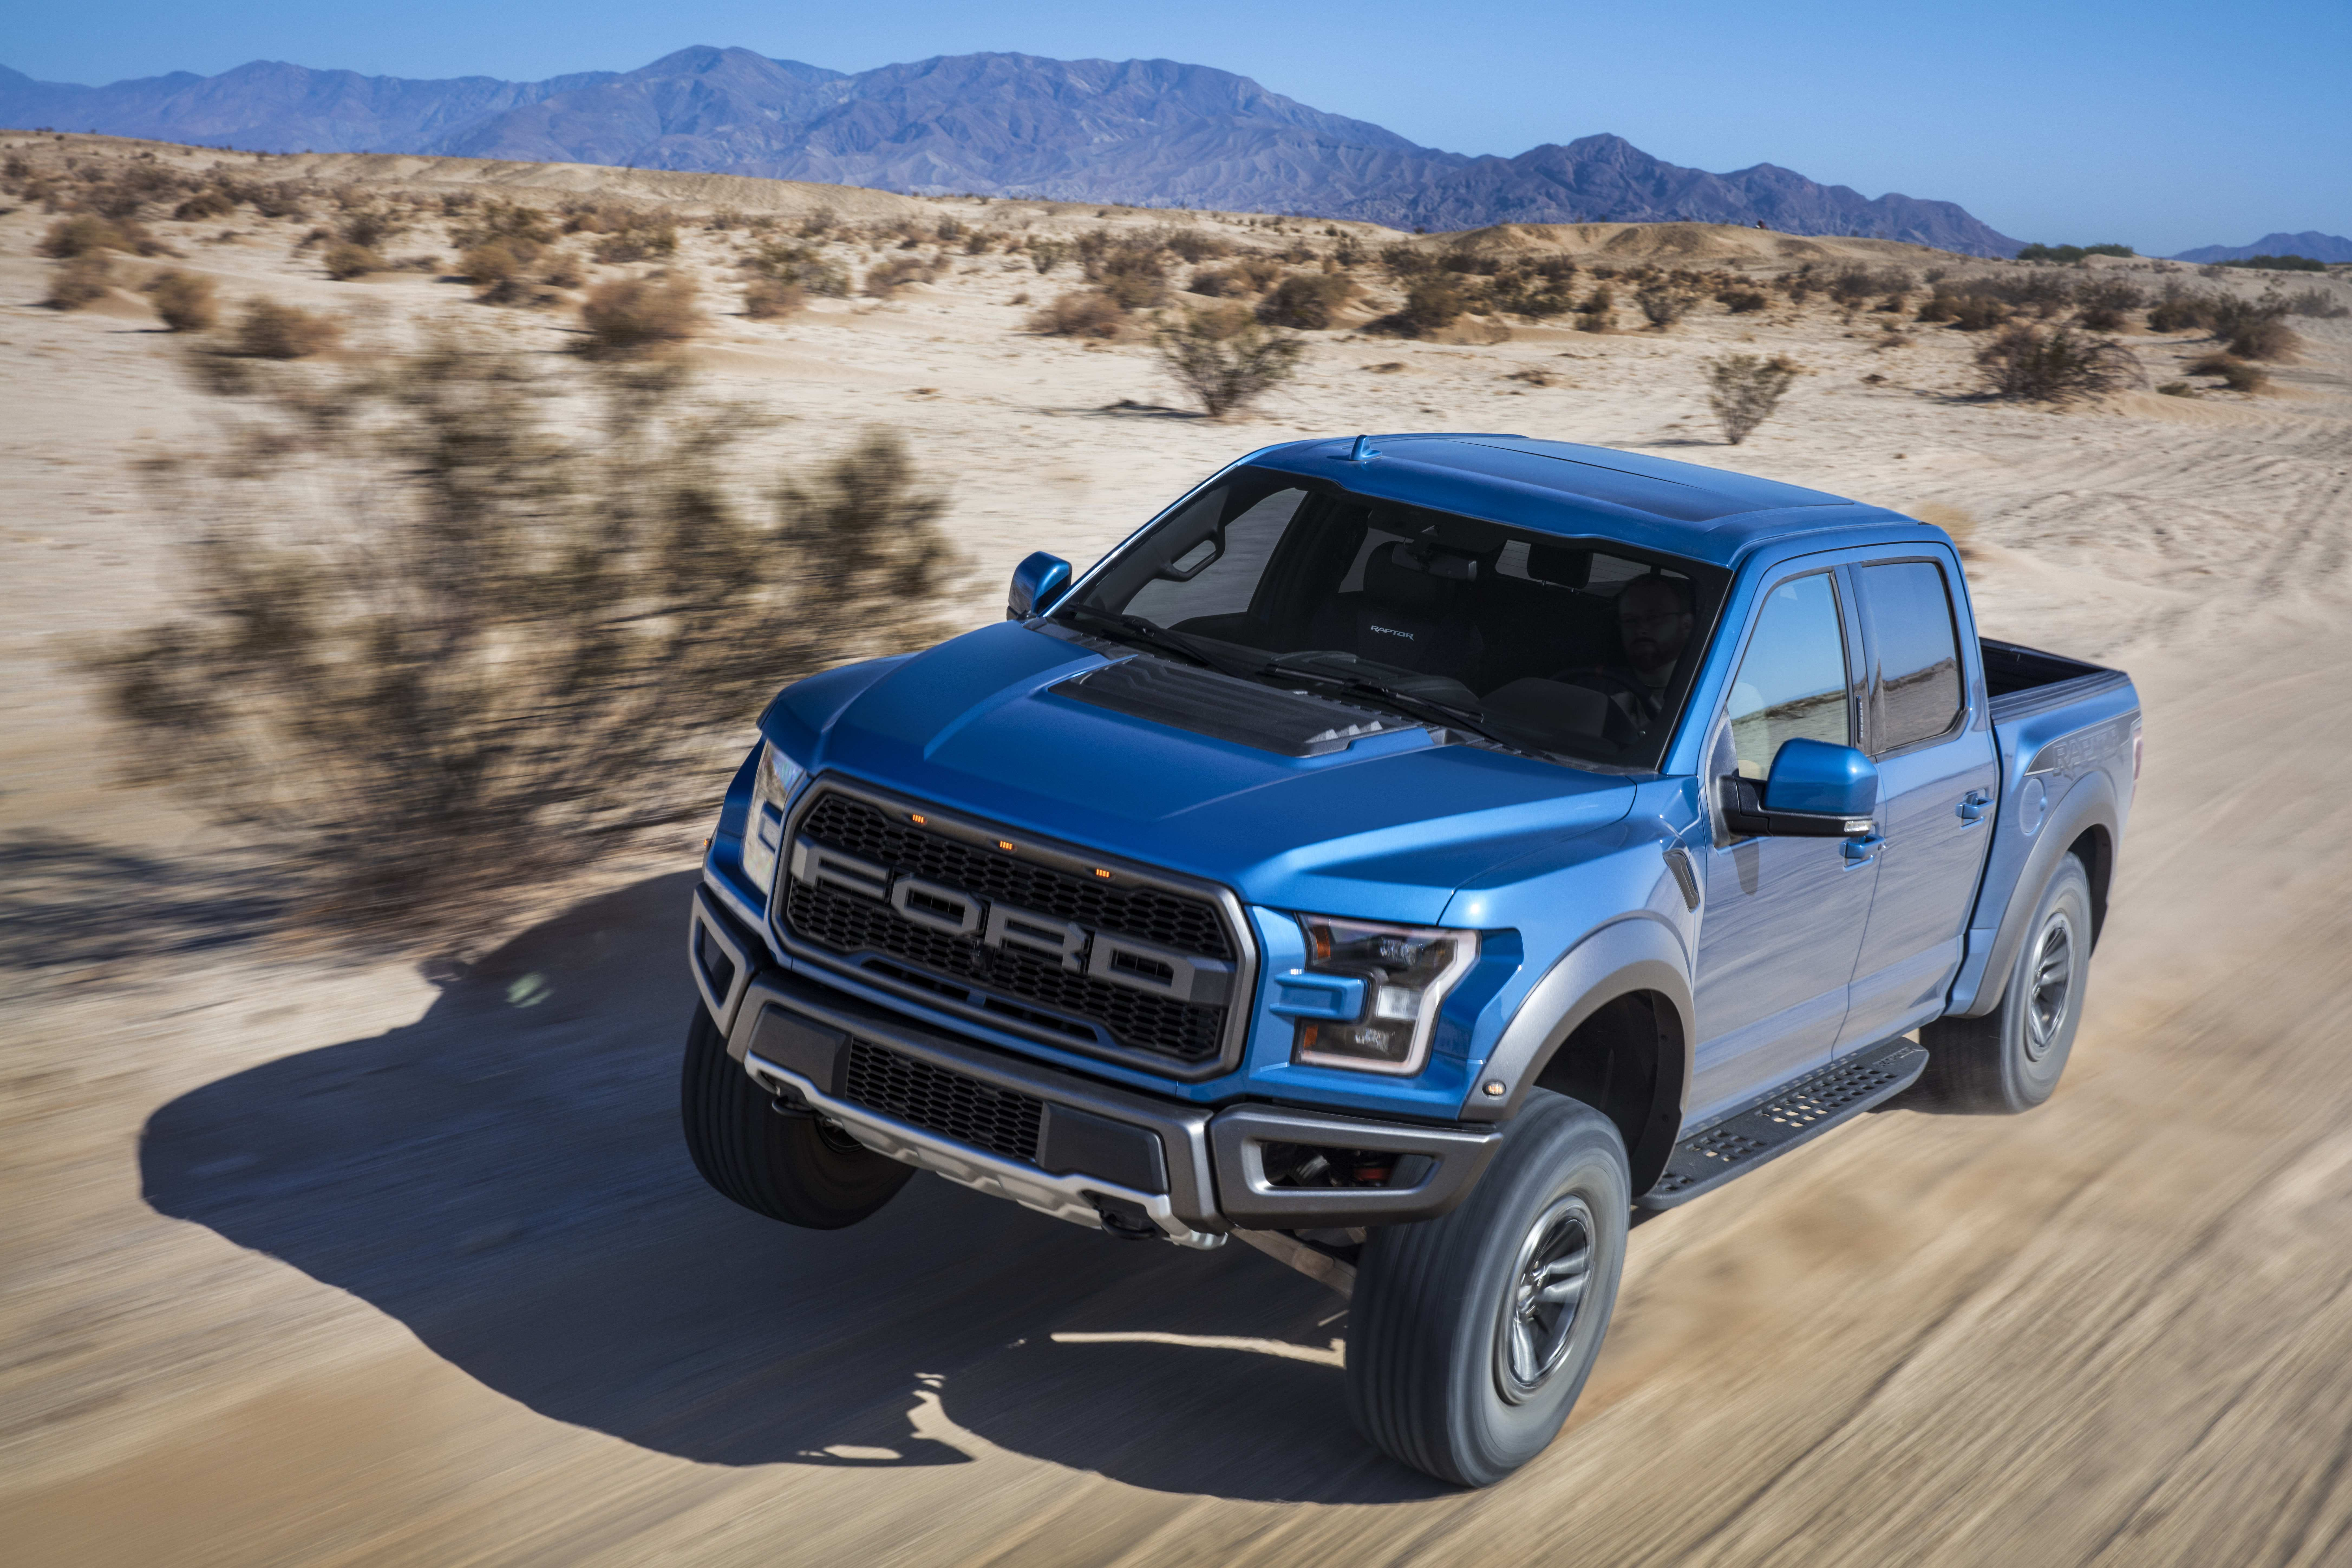 98 The Best 2019 Ford F150 Svt Raptor Specs And Review